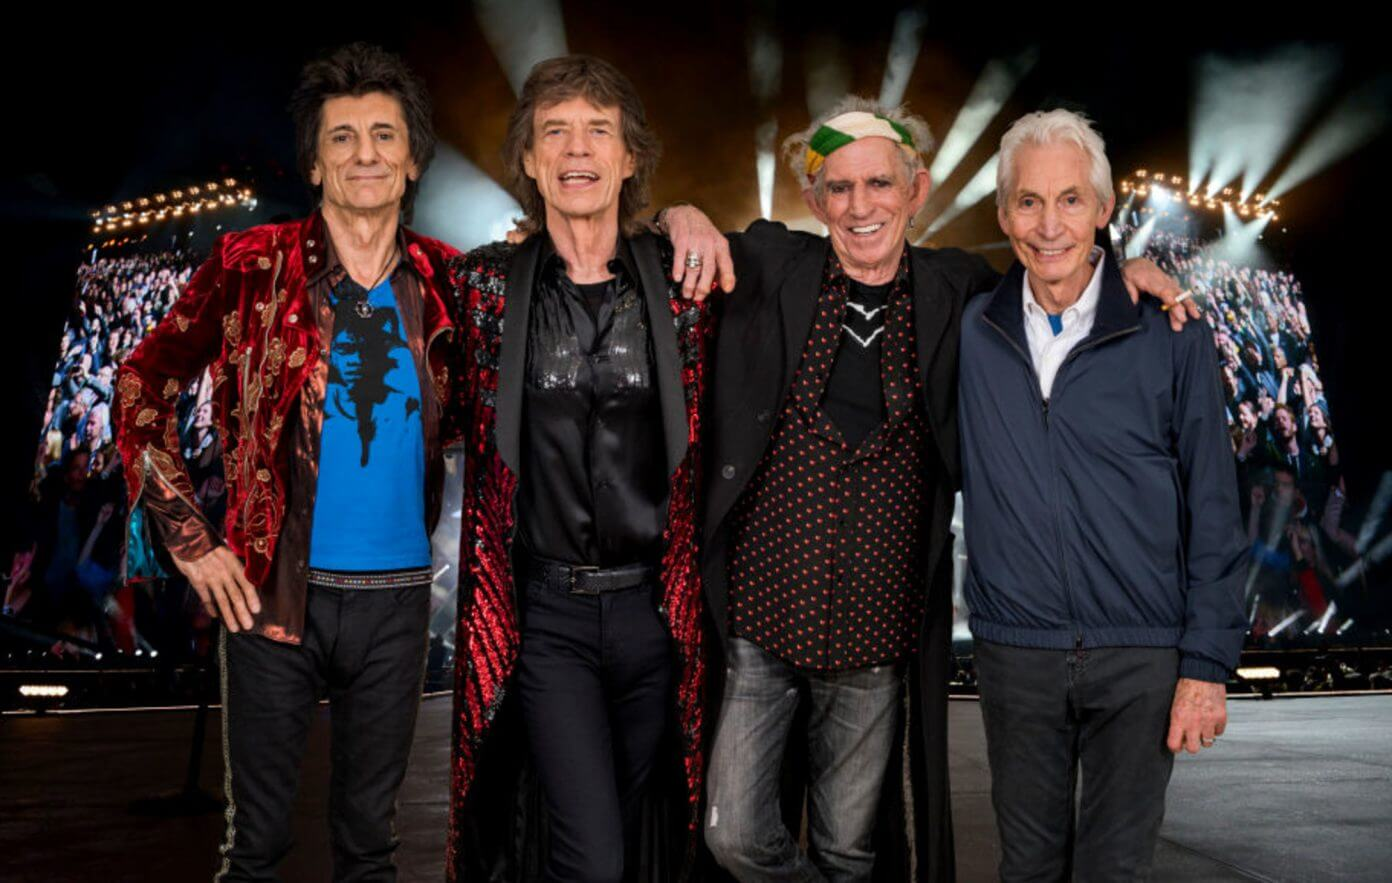 The Rolling Stones Broken Record campaign